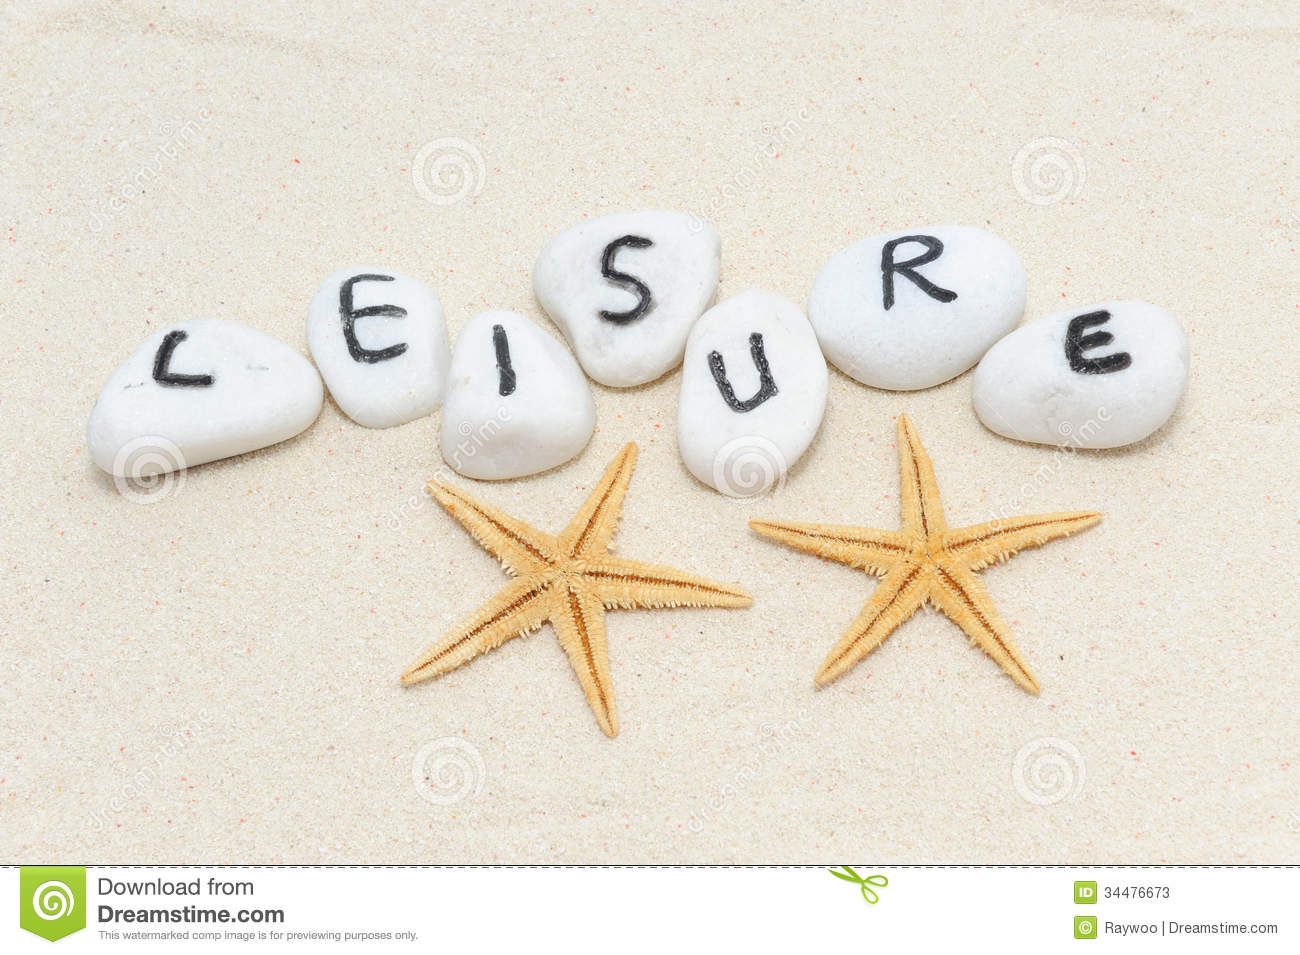 Stock Photos Leisure Word Group Stones Sand Background Decorated Two Sea Stars Image34476673 on Letter L 2